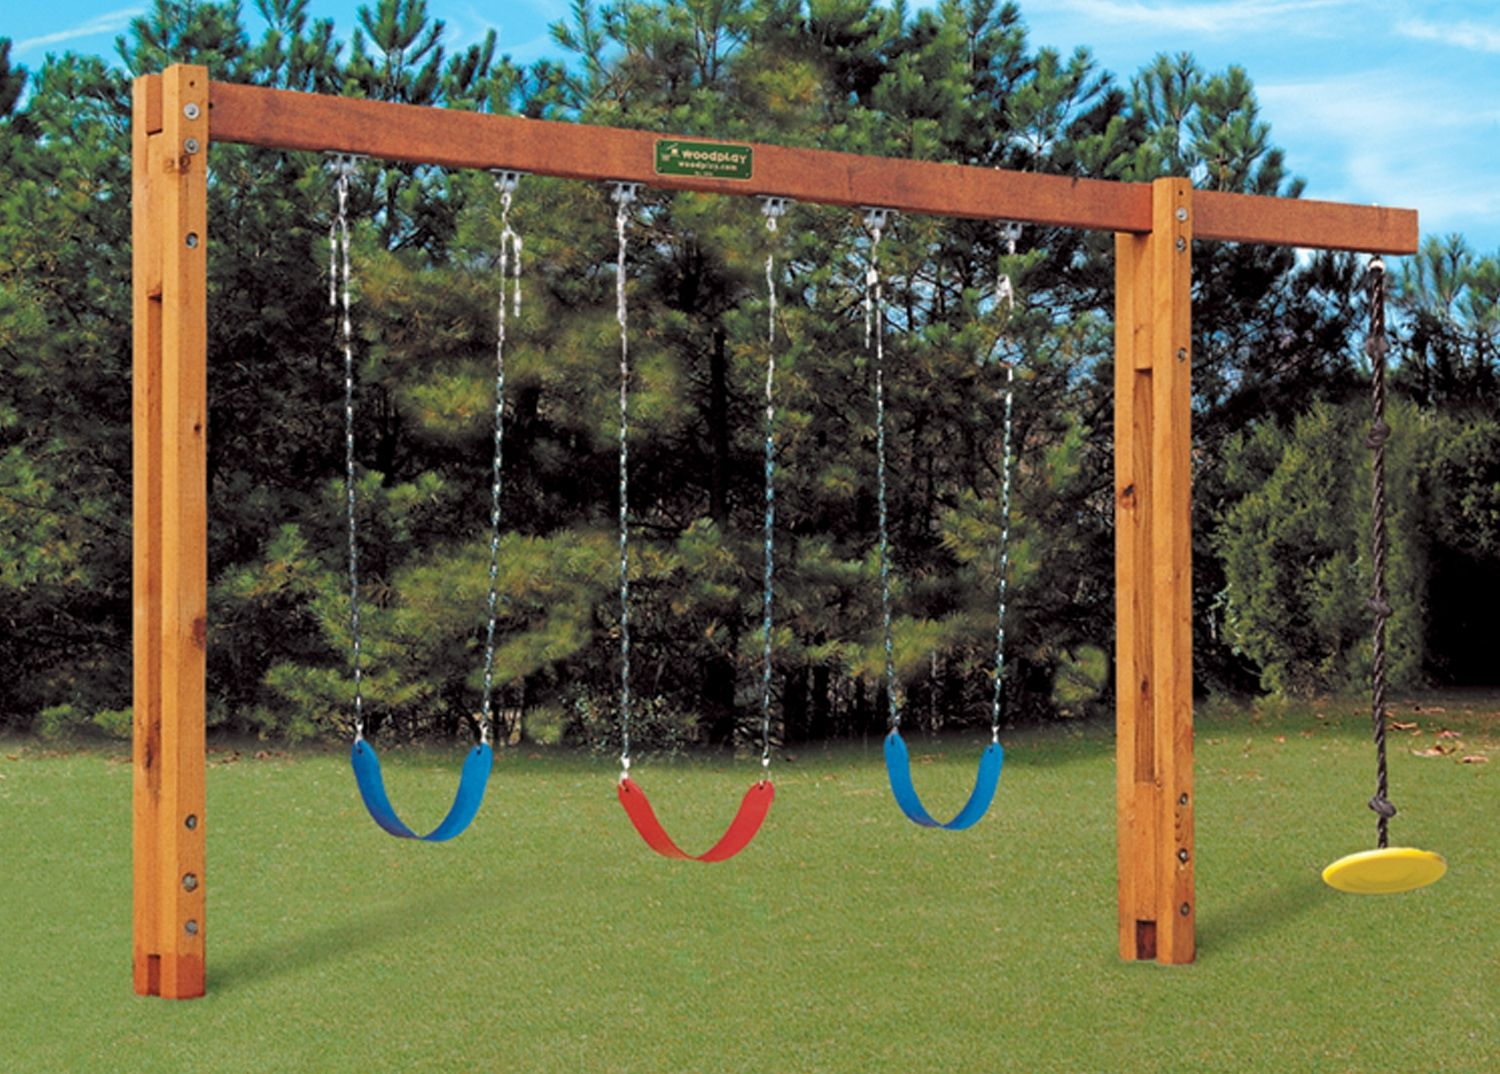 Freestanding Swingset Backyard Playground Backyard Swings Diy Playground